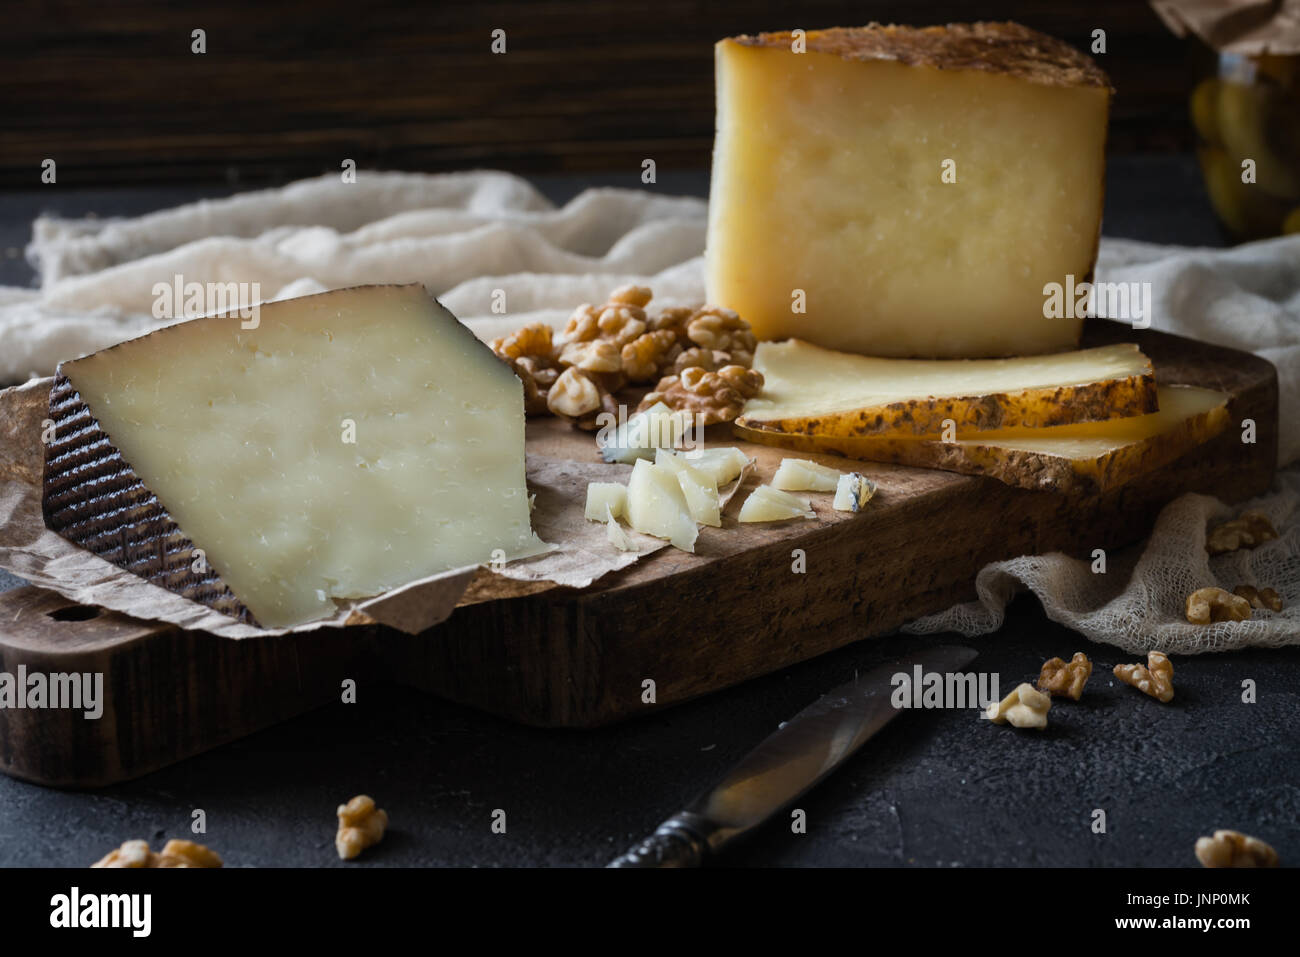 Cheese platter of chopped Spanish hard cheese manchego and sliced Italian pecorino toscano) on wooden board, with green olives in glass jar and walnut - Stock Image